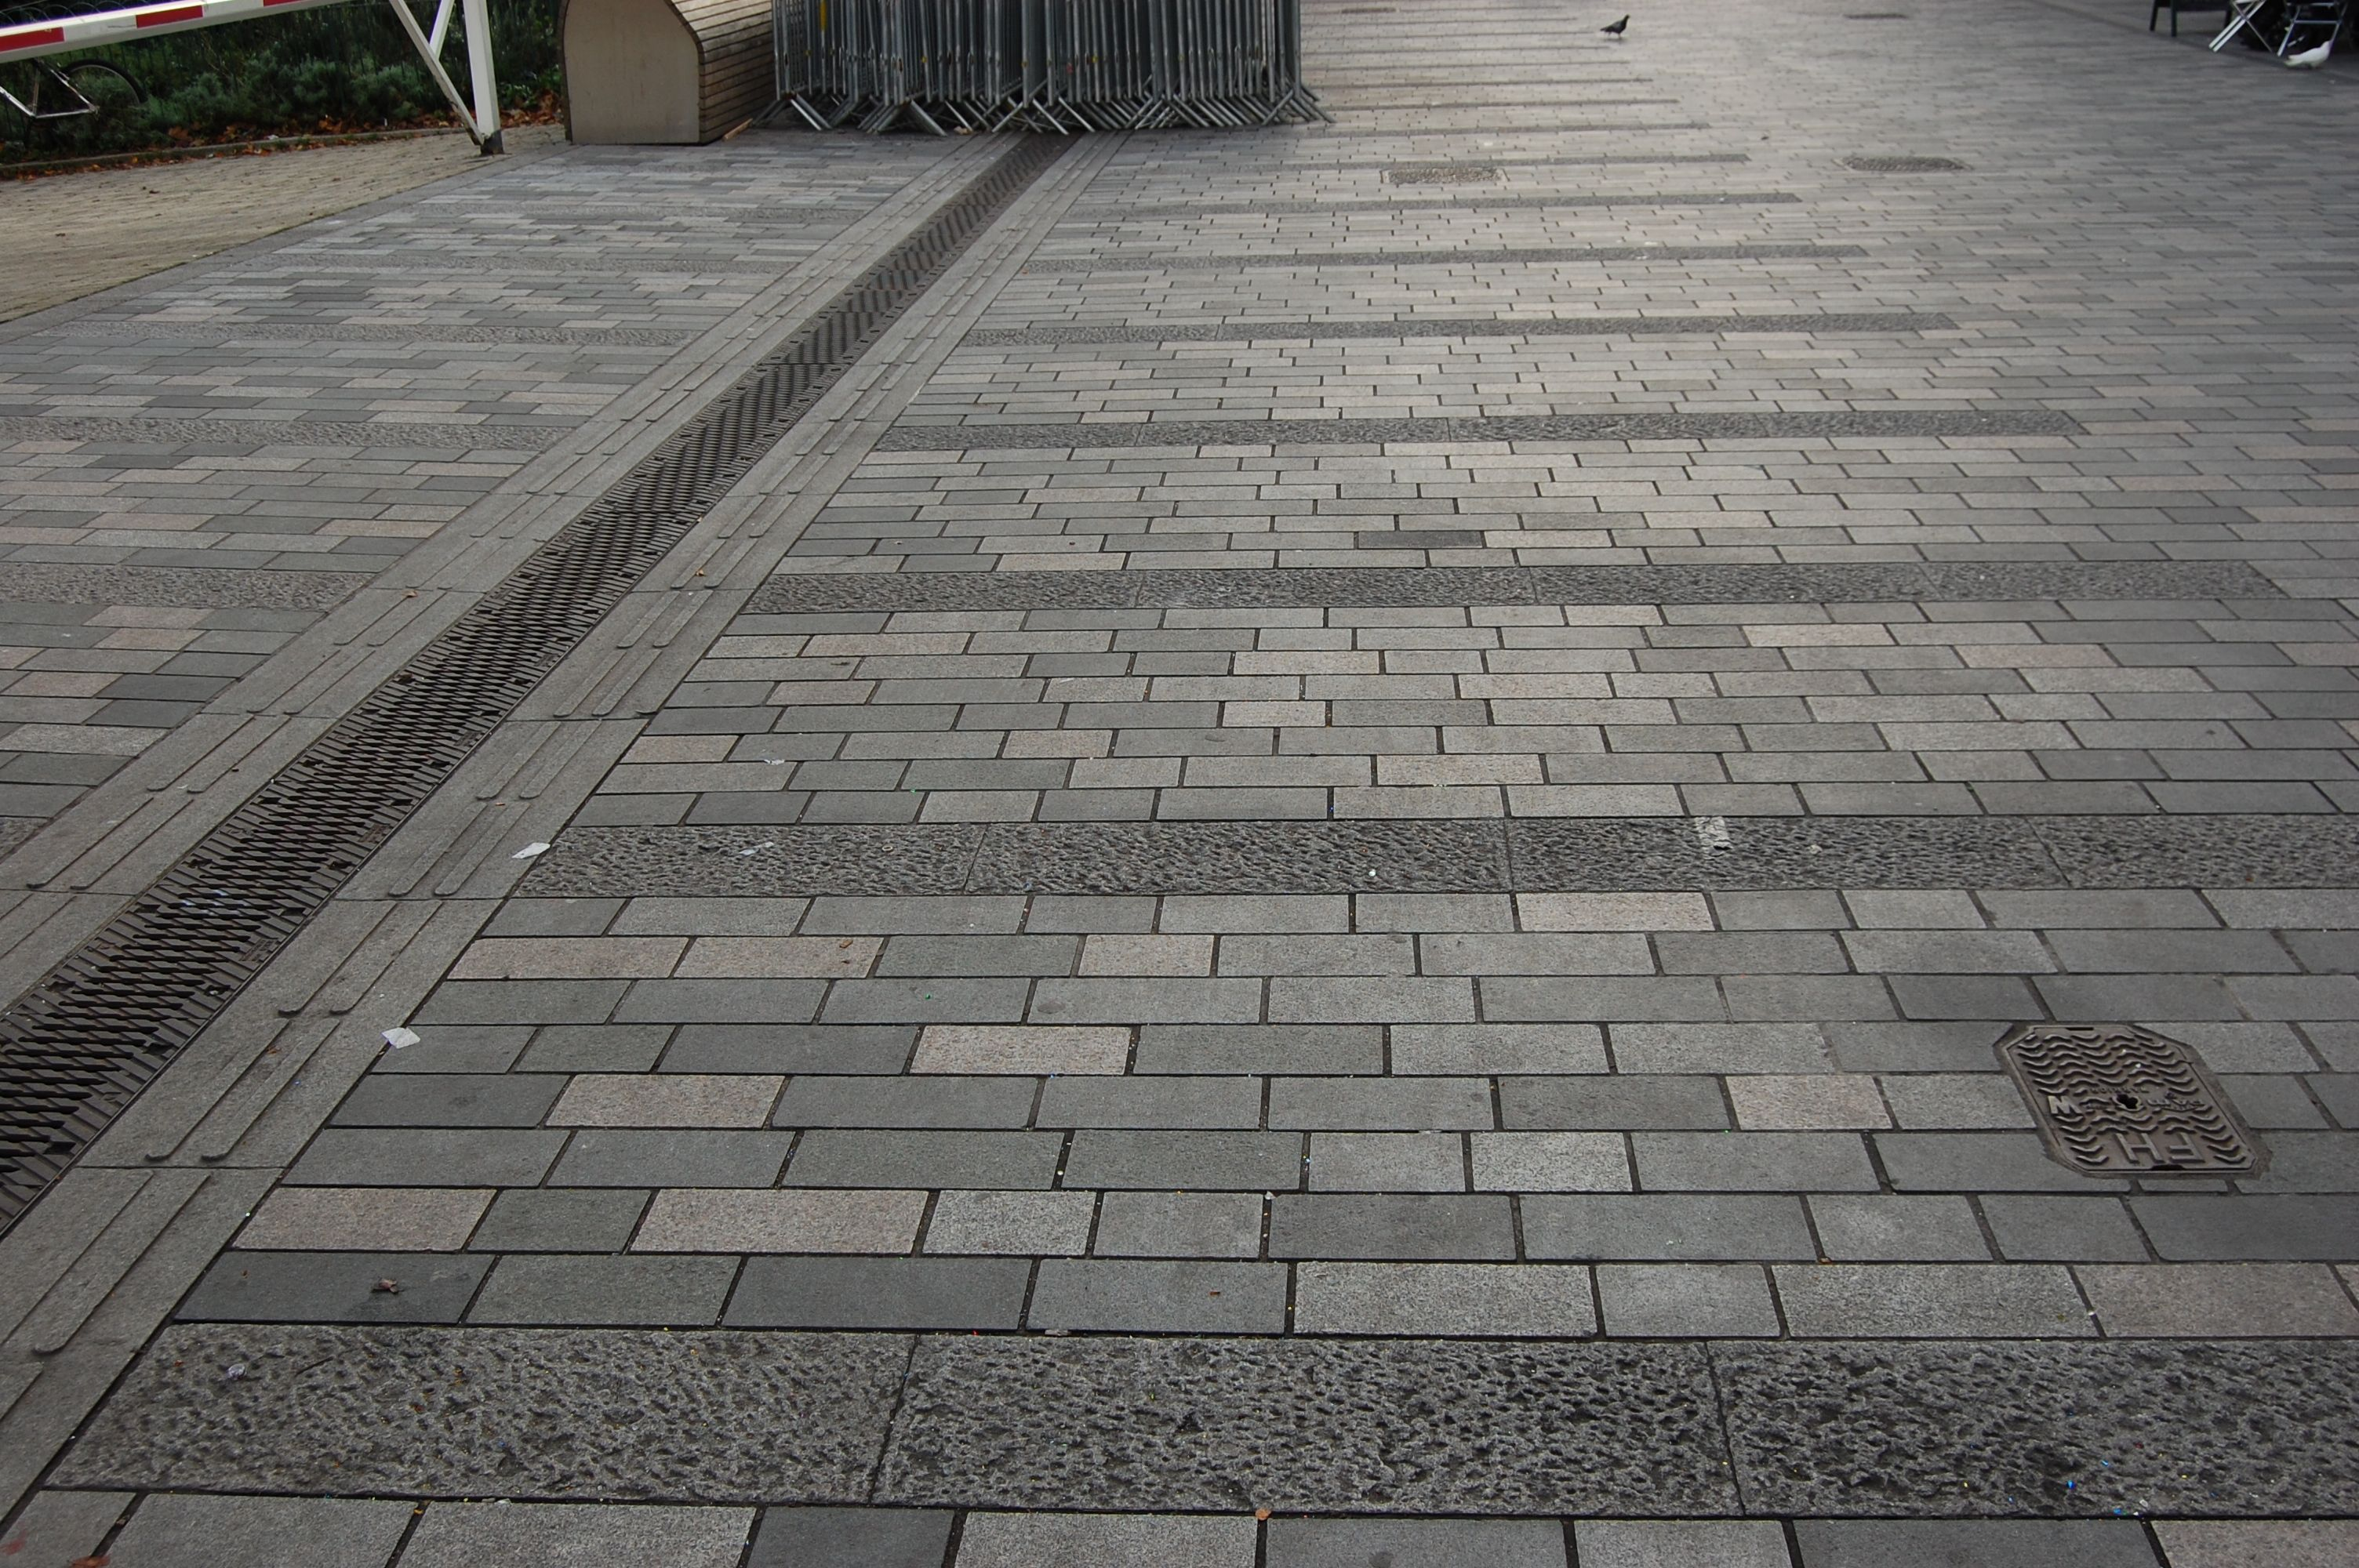 Vehicular Paving Google Search Fine Paving Pinterest